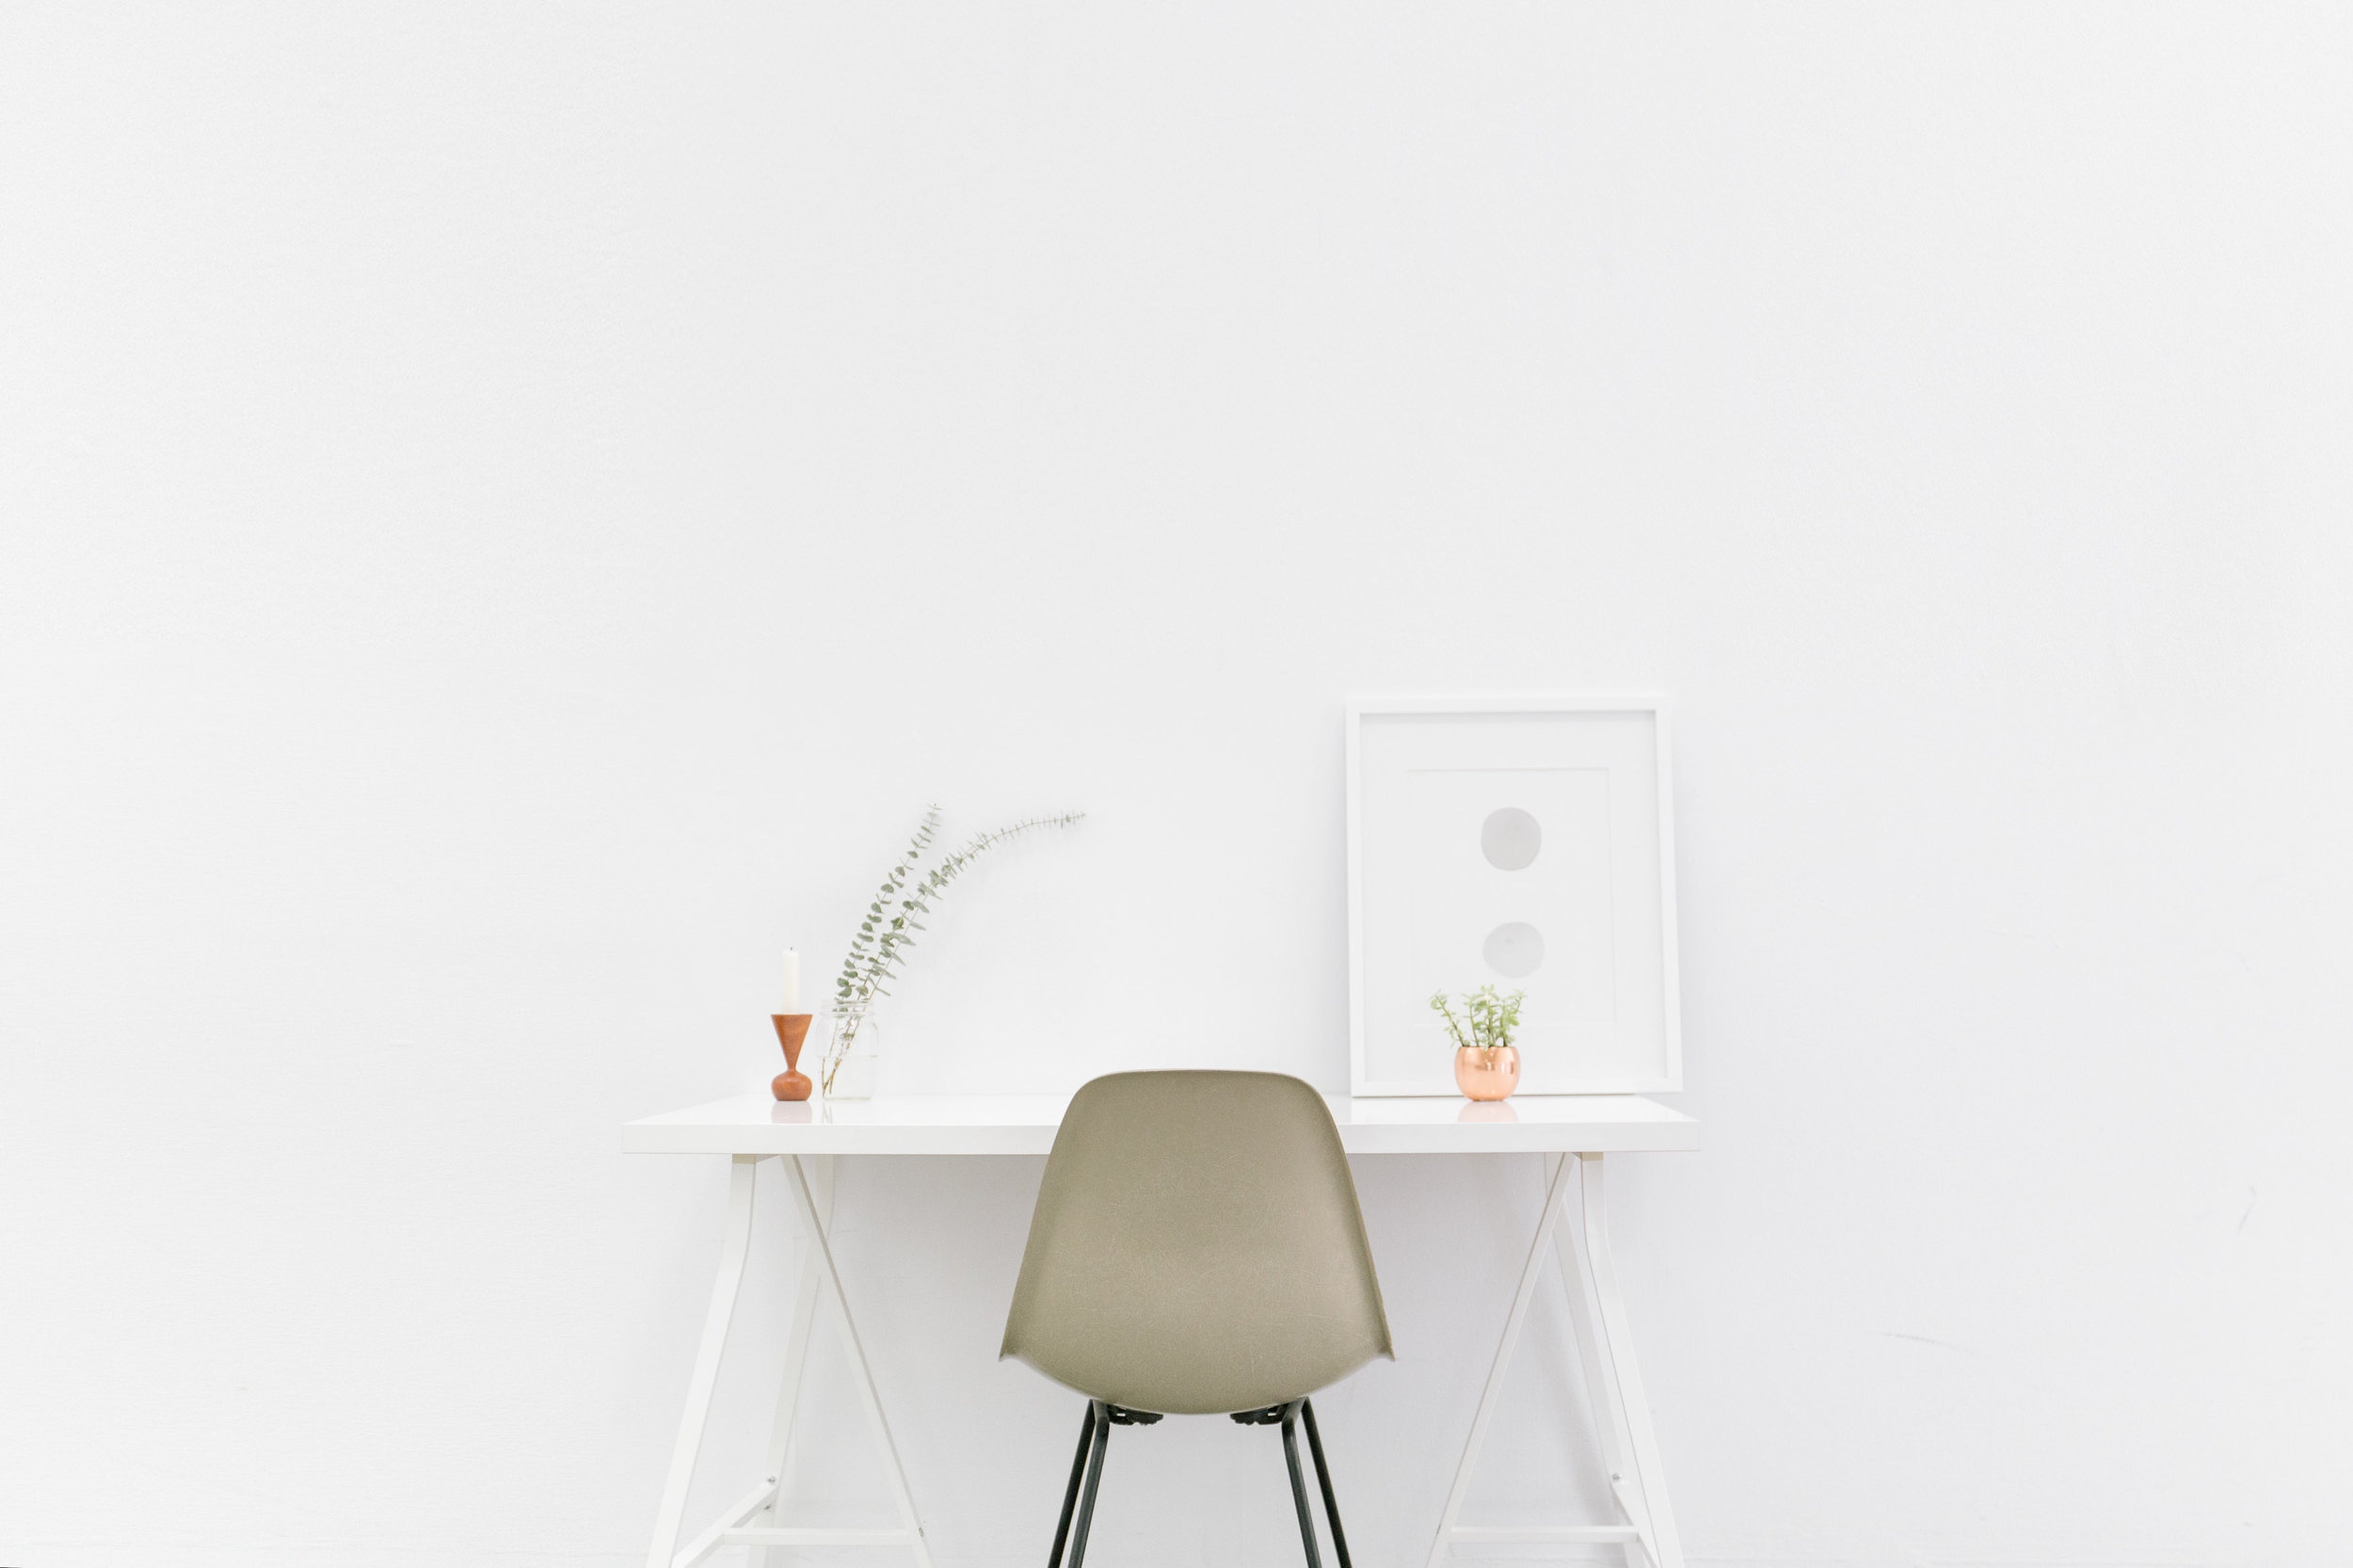 Canva - Beige and Black Chair in Front of White Desk.jpg